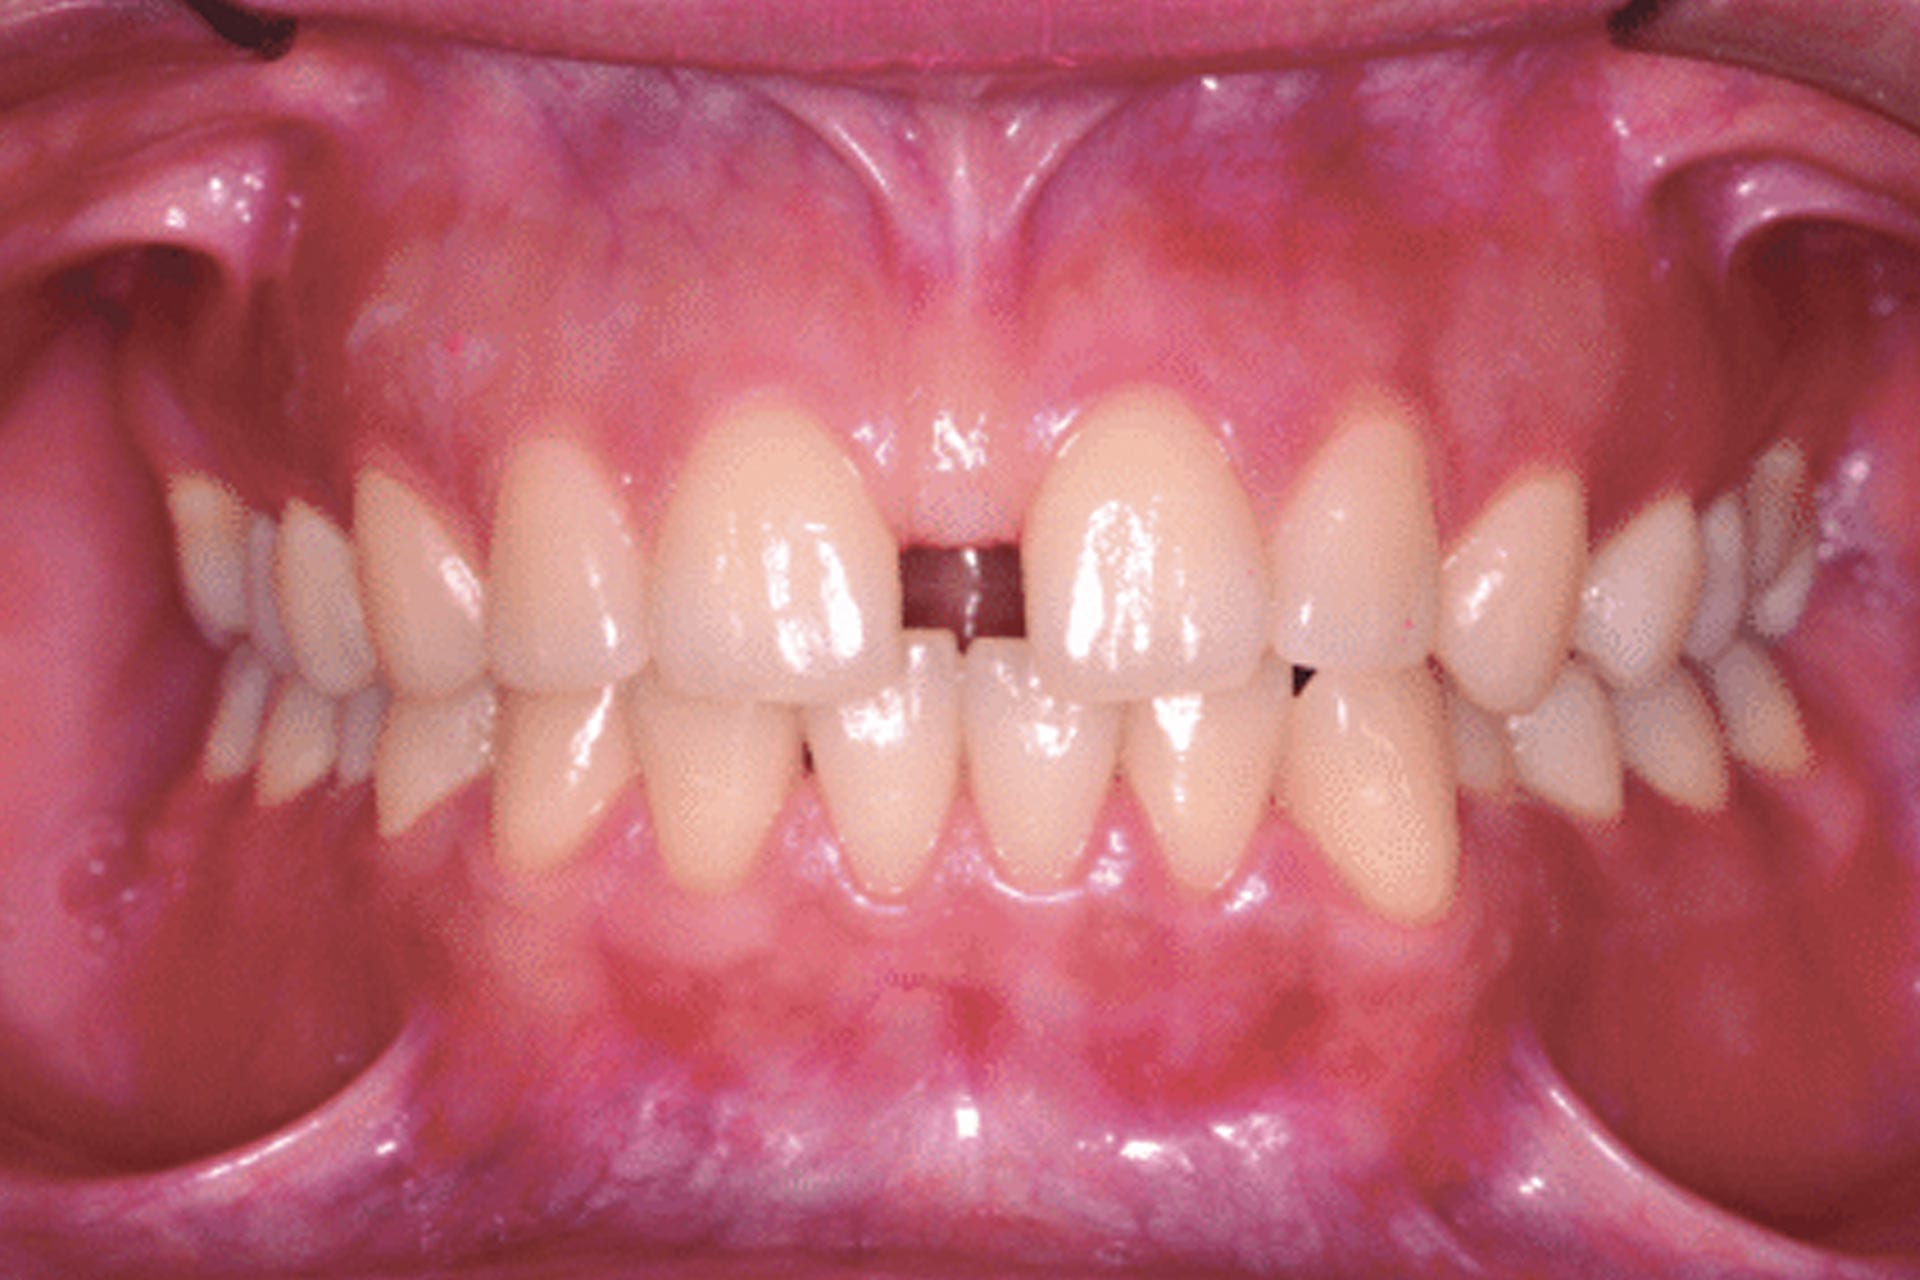 enlarged labial frenum diastema